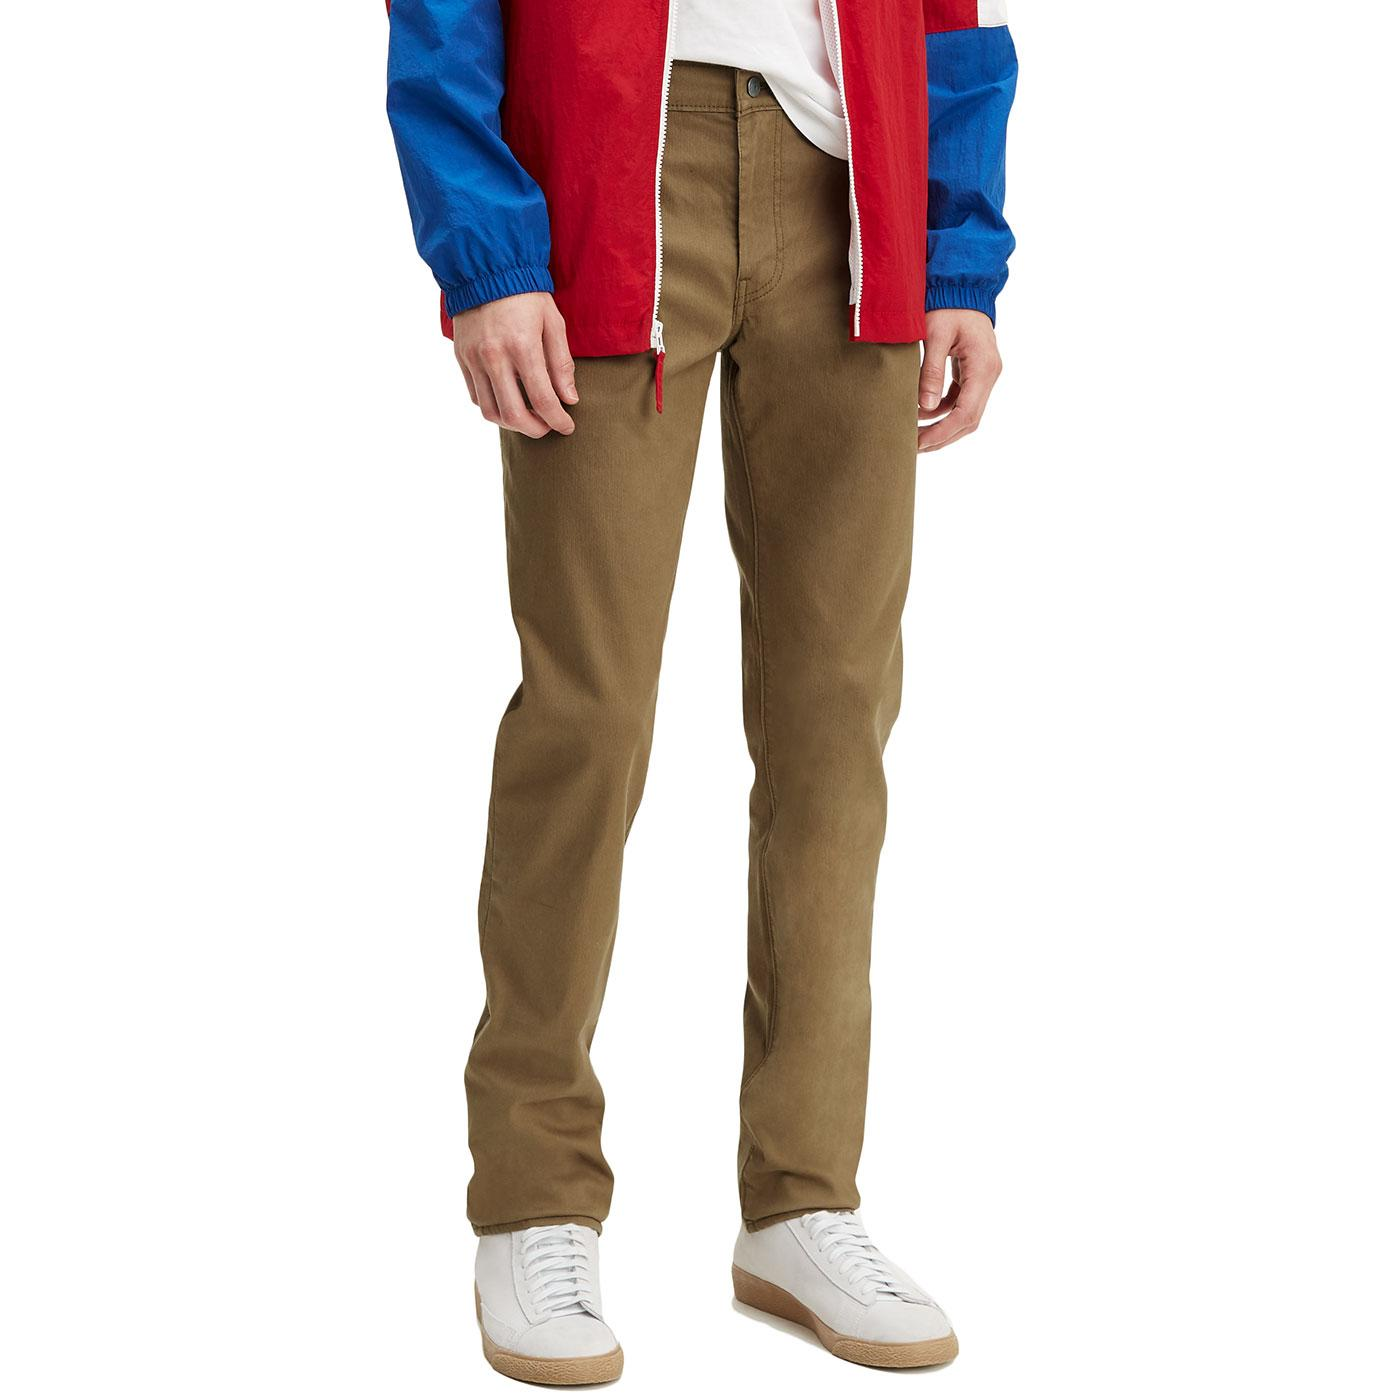 LEVI'S 511 Mod Bedford Cord Chino Trousers COUGAR